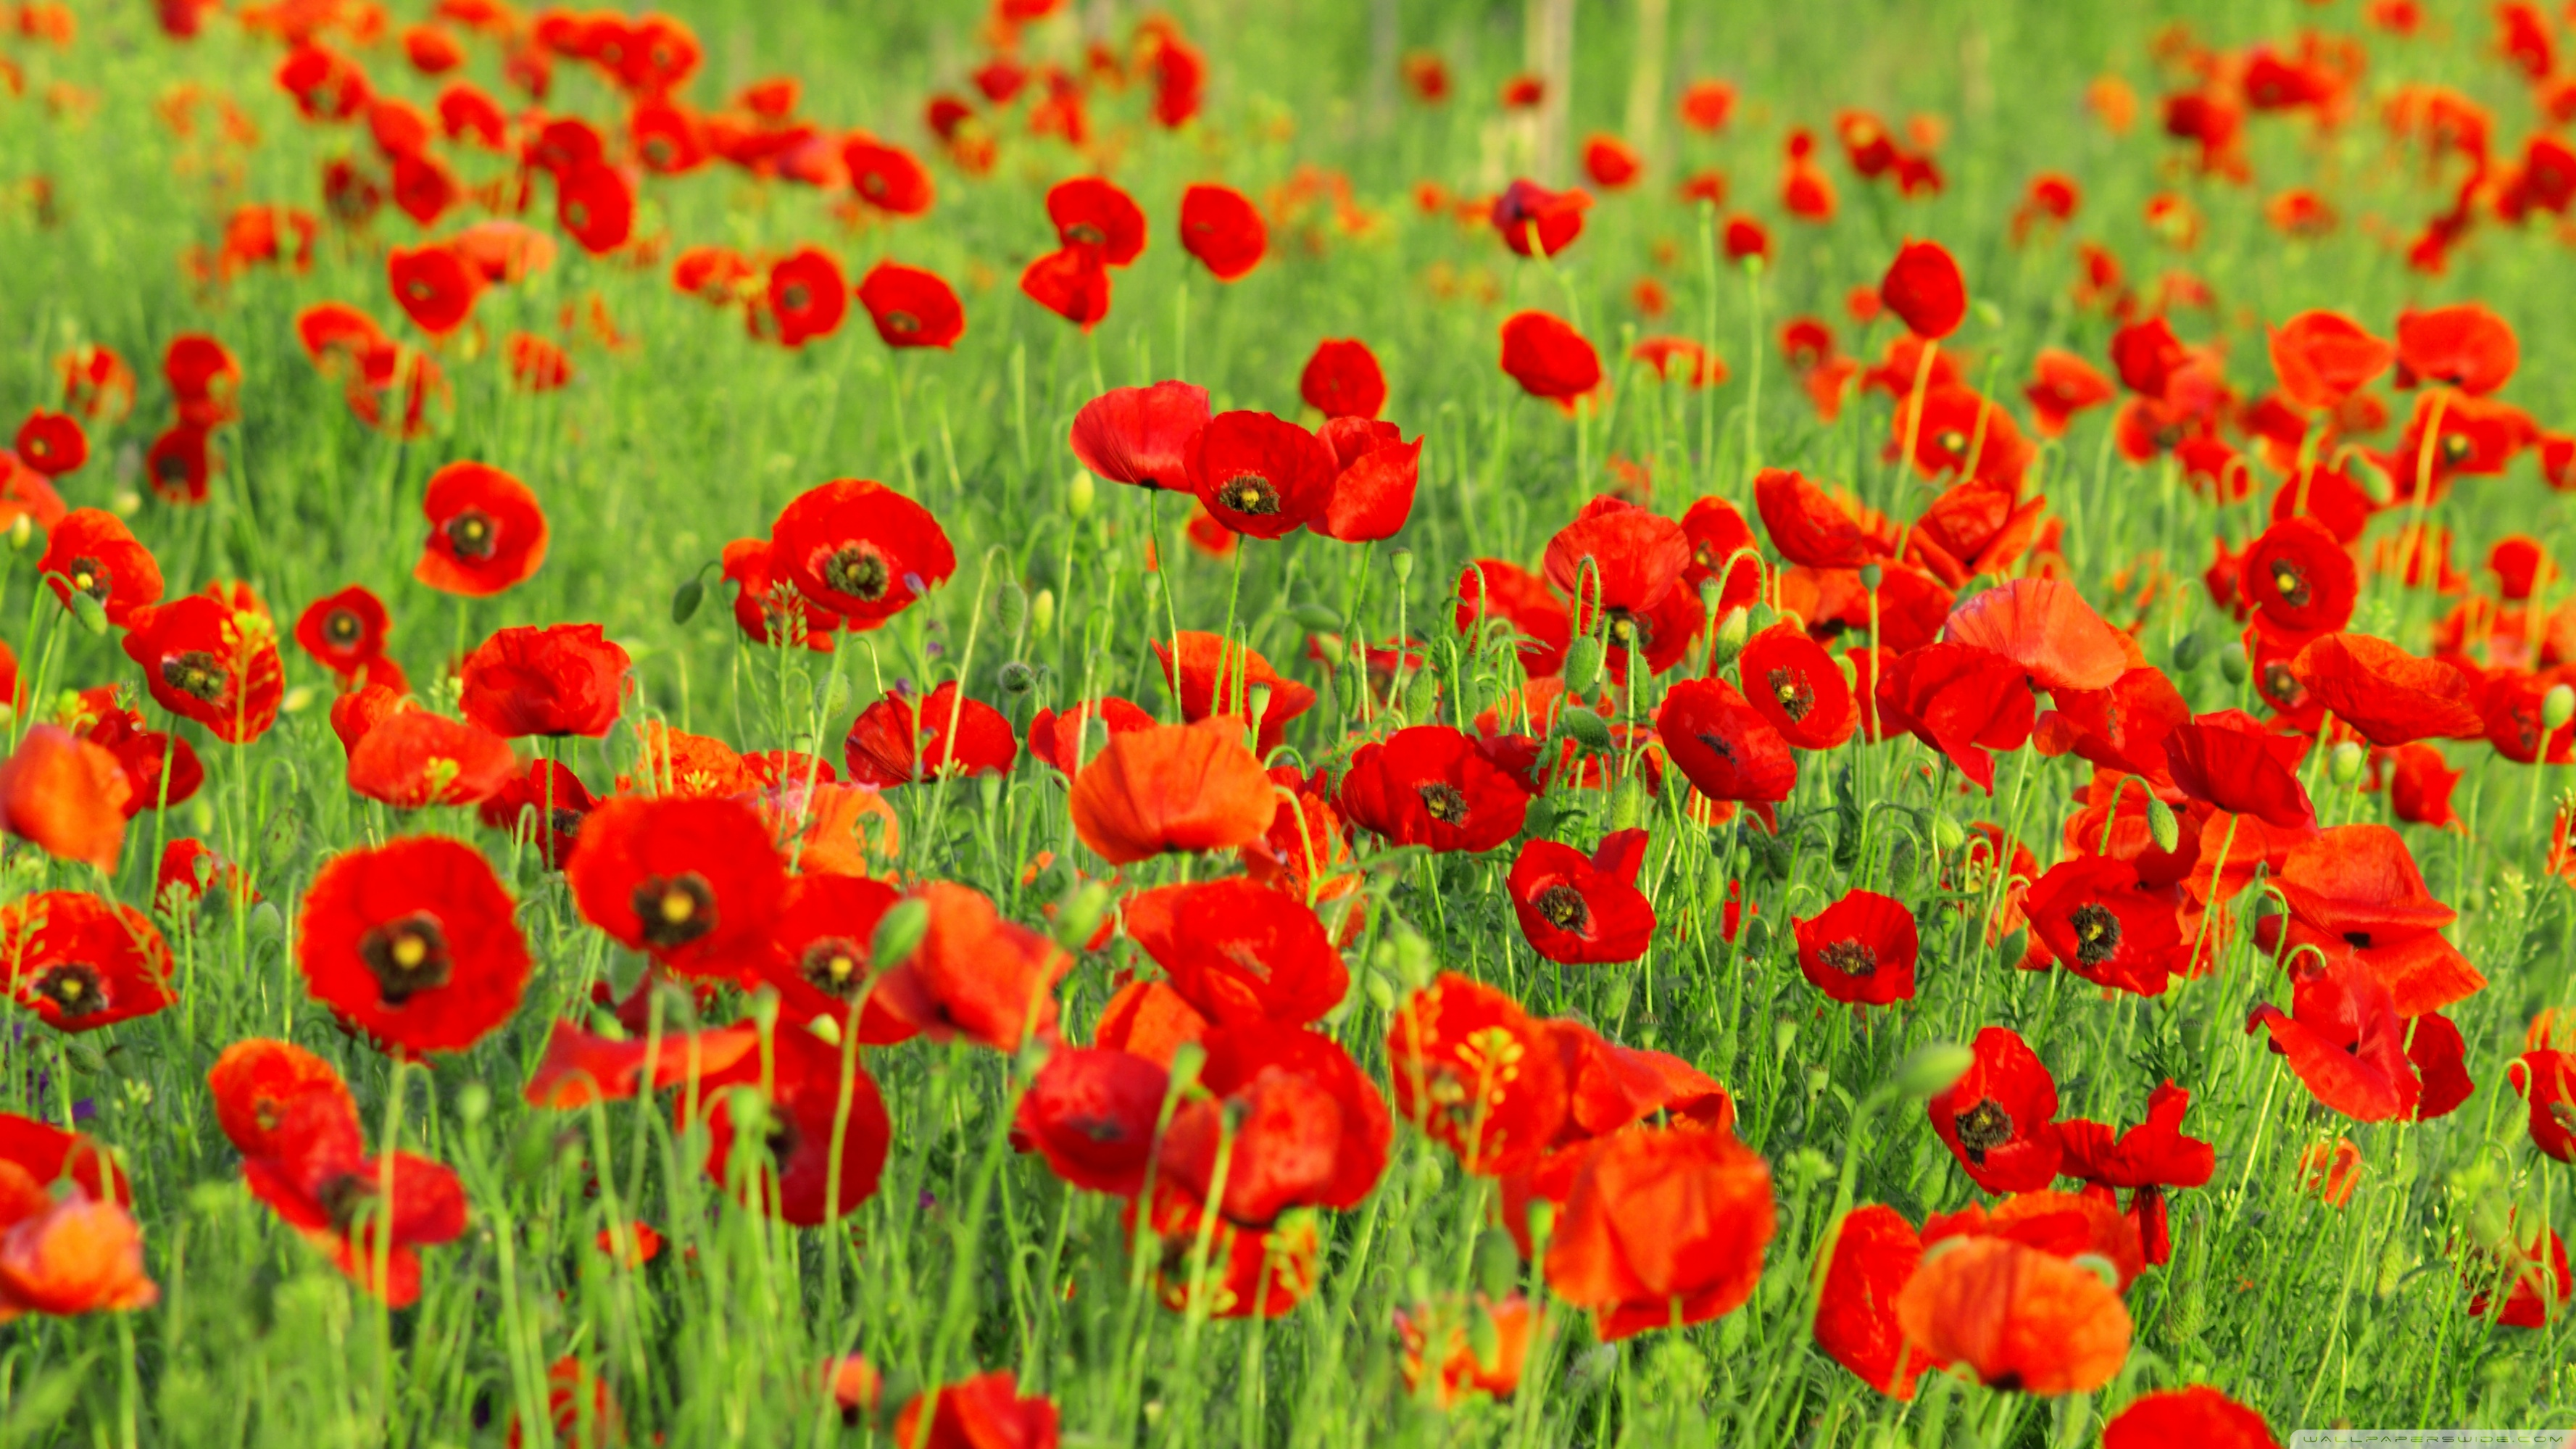 Red poppies field wallpapers and images   wallpapers pictures photos 3554x1999